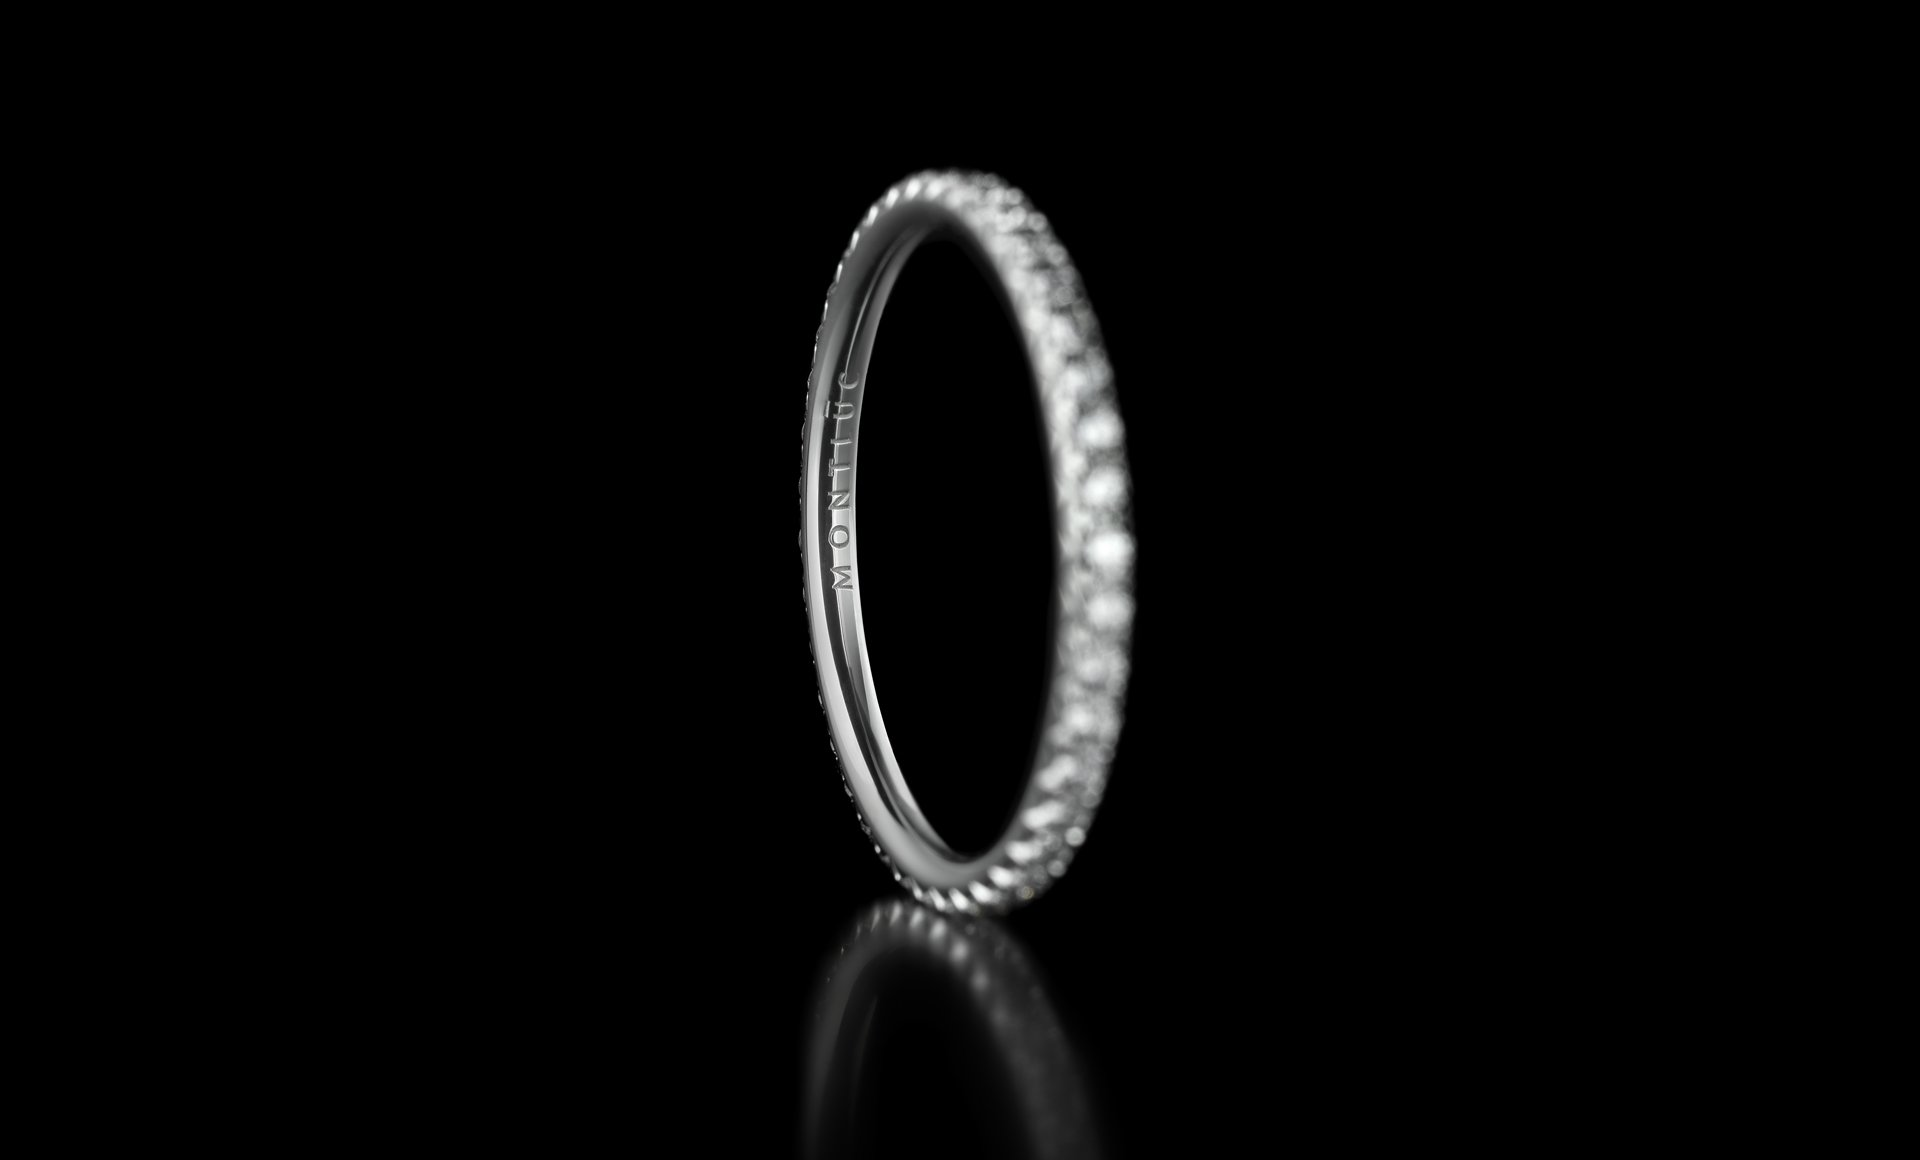 Montluc - Halo No 1 diamond ring, viewed from an angle, with engravement in focus